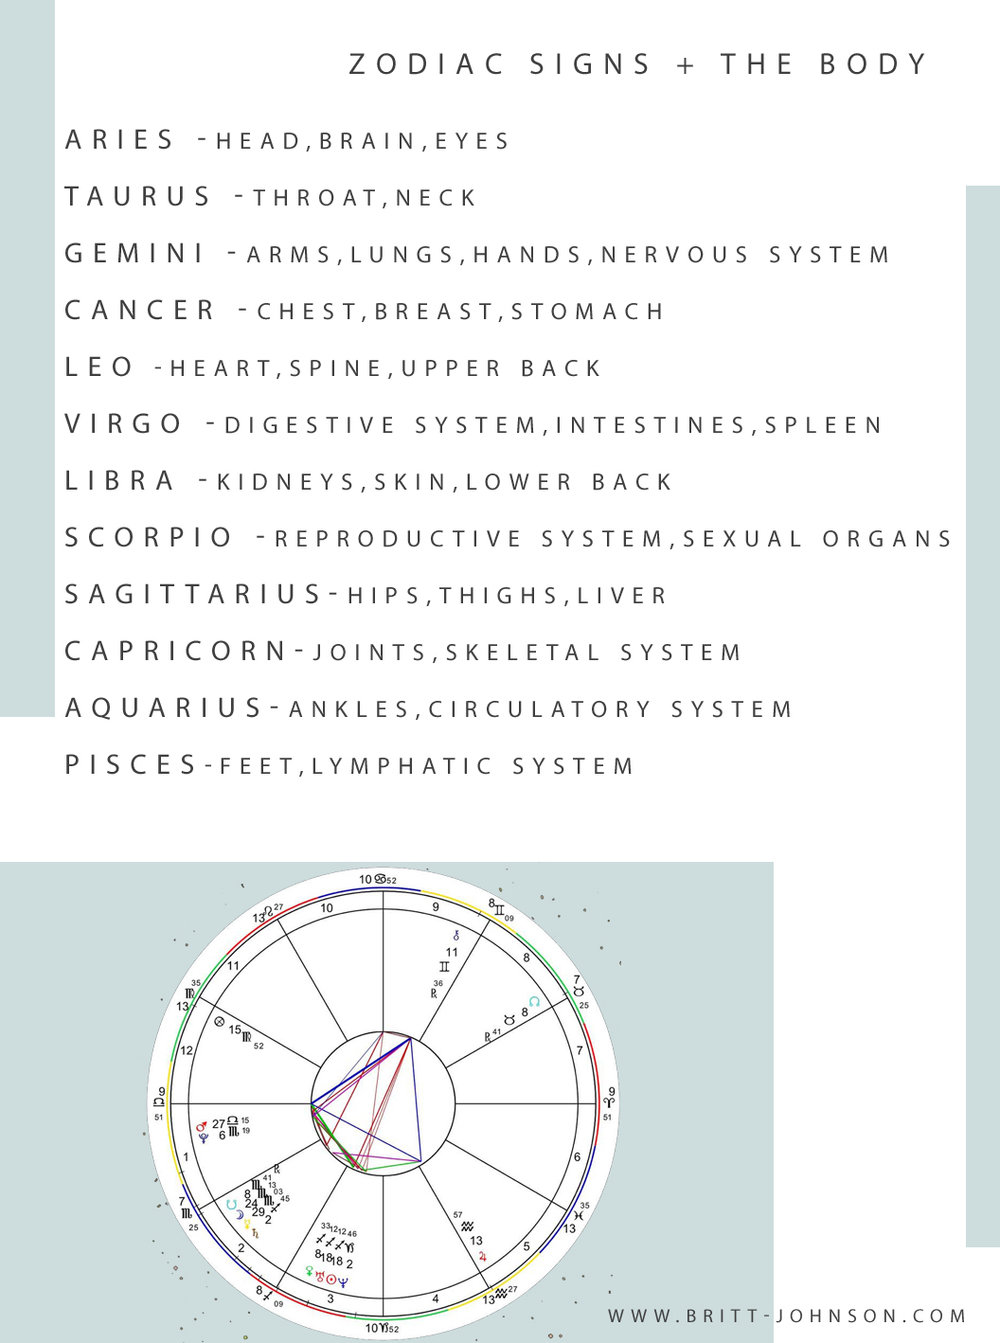 Zodiac Signs and the bodysquare.jpg